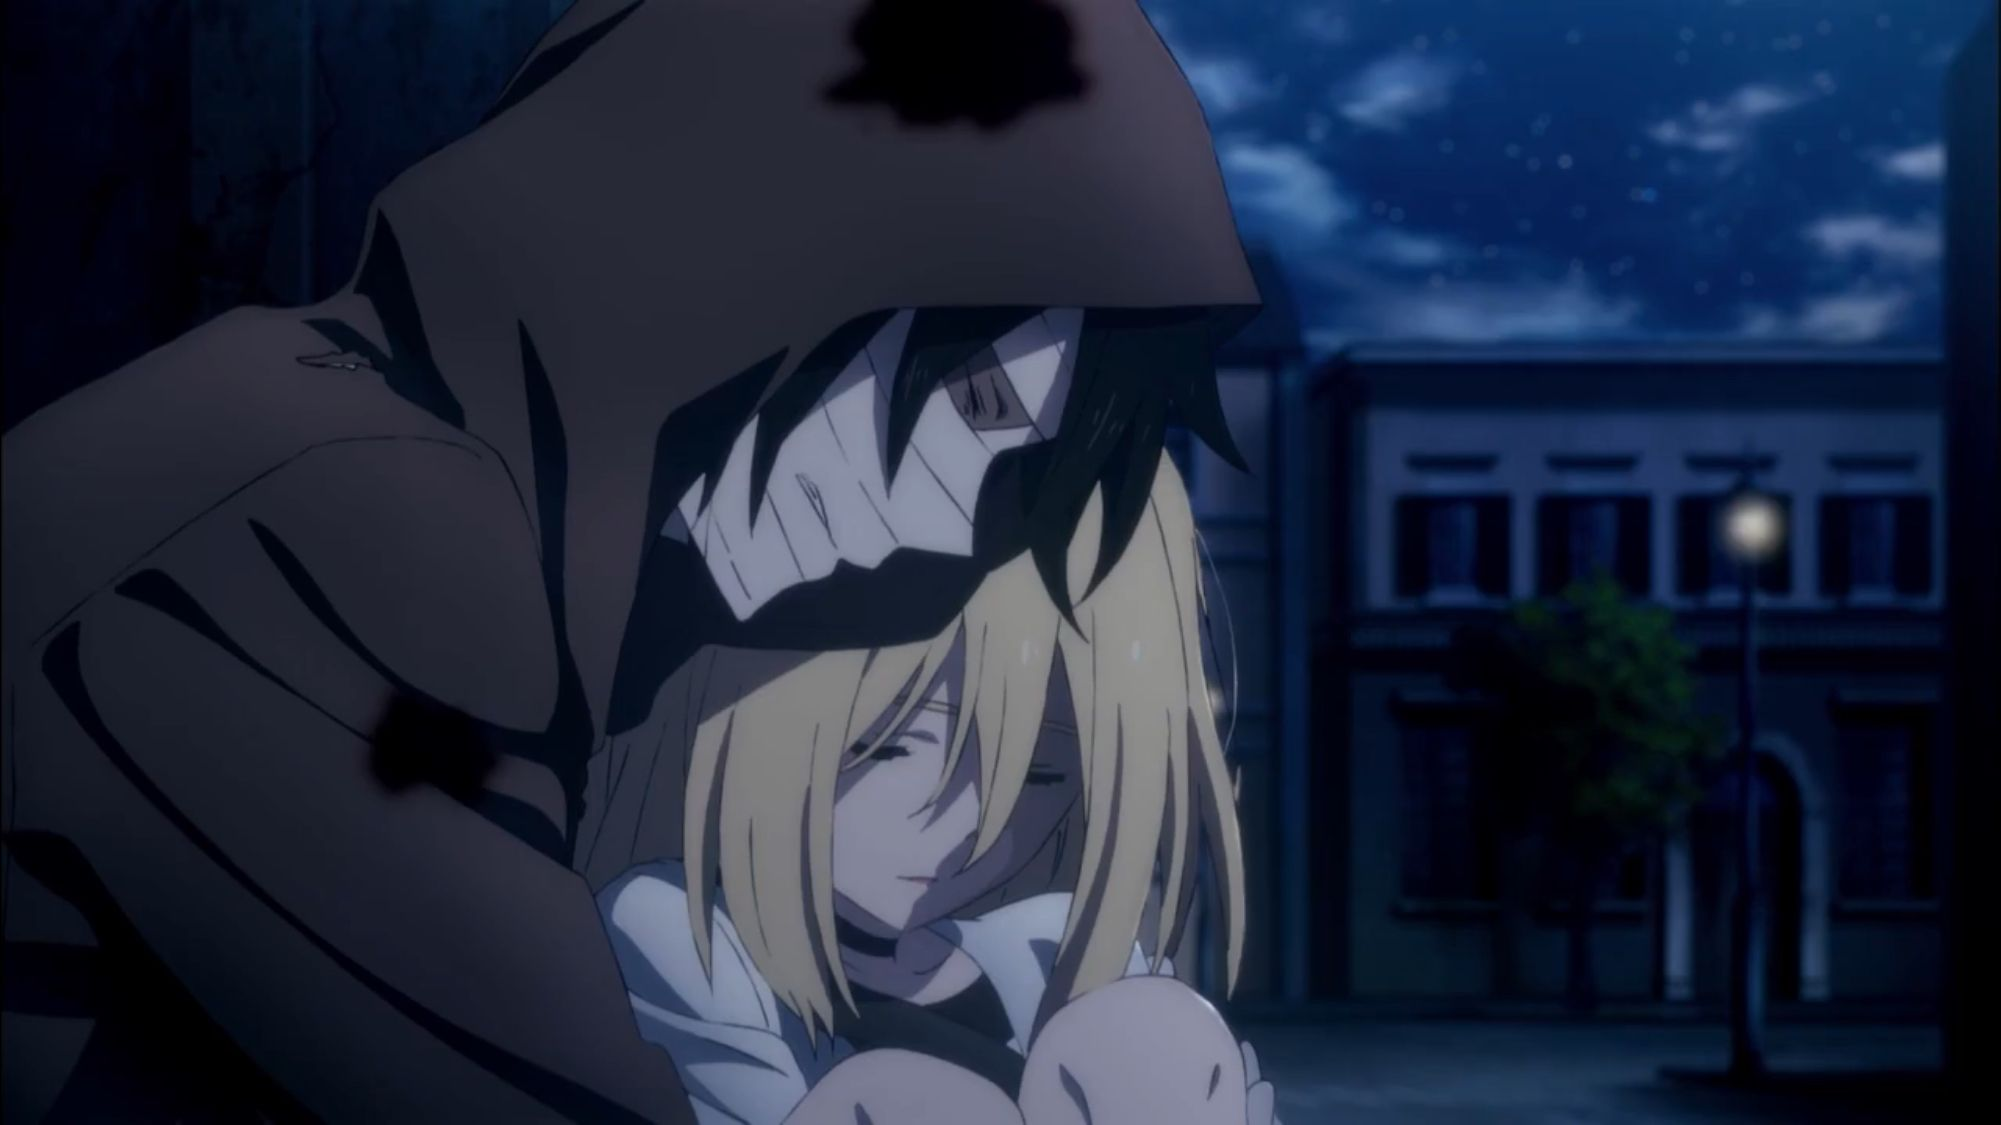 Pin by bskb on Angel of death  Angel of death, Anime, Anime love